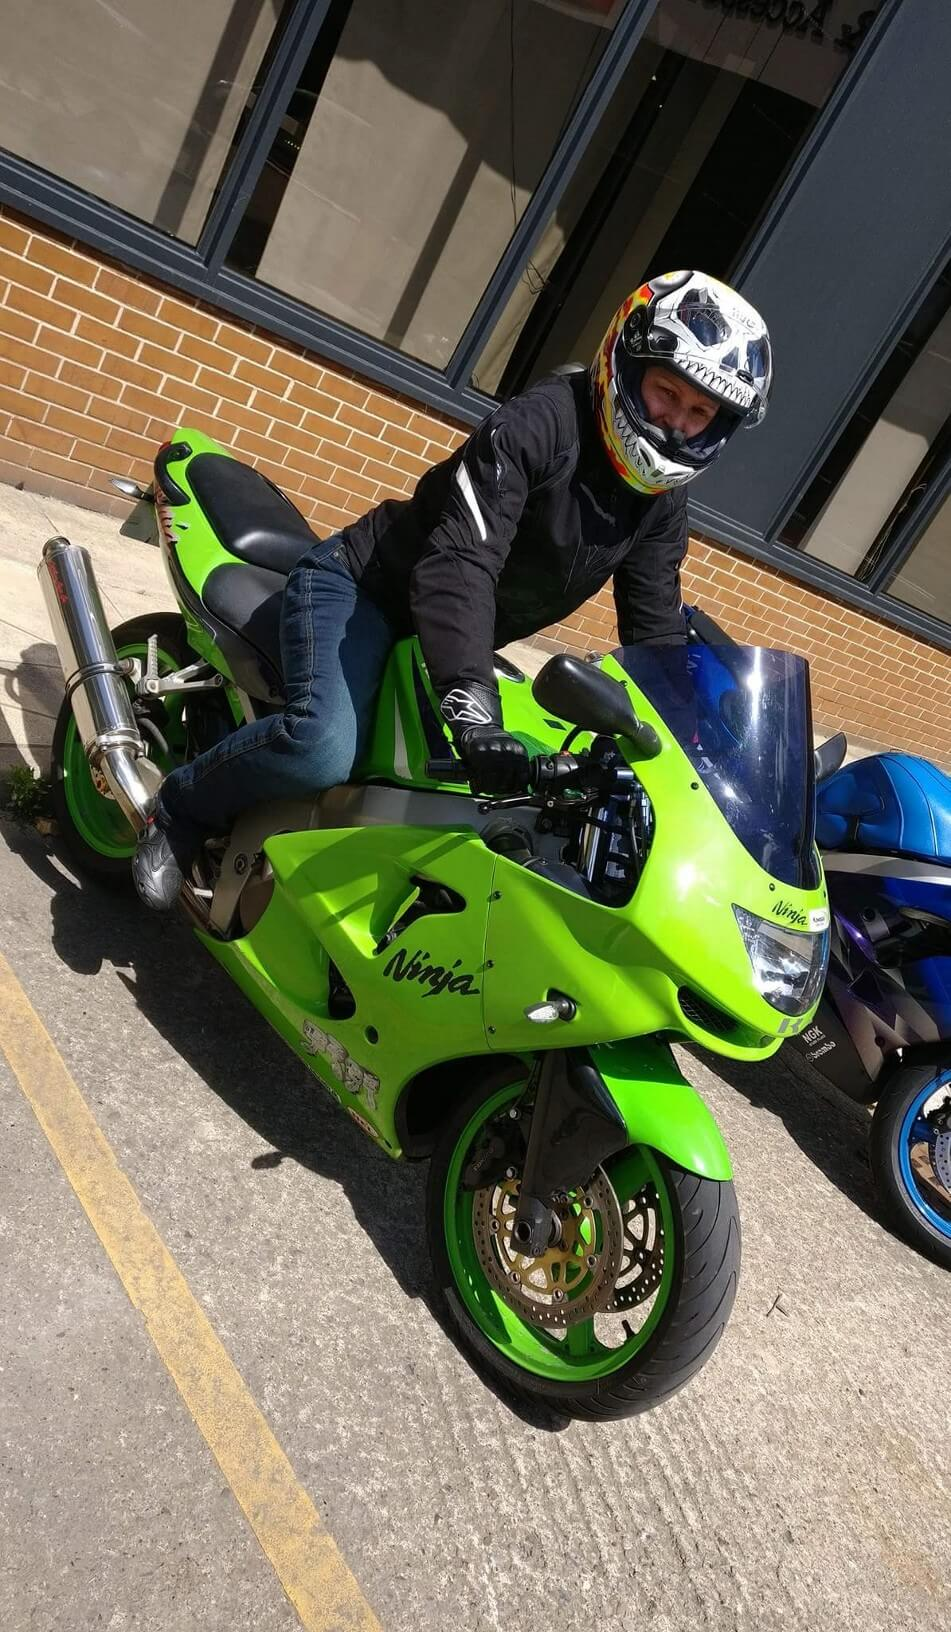 Ola from Infinity Motorcycles York